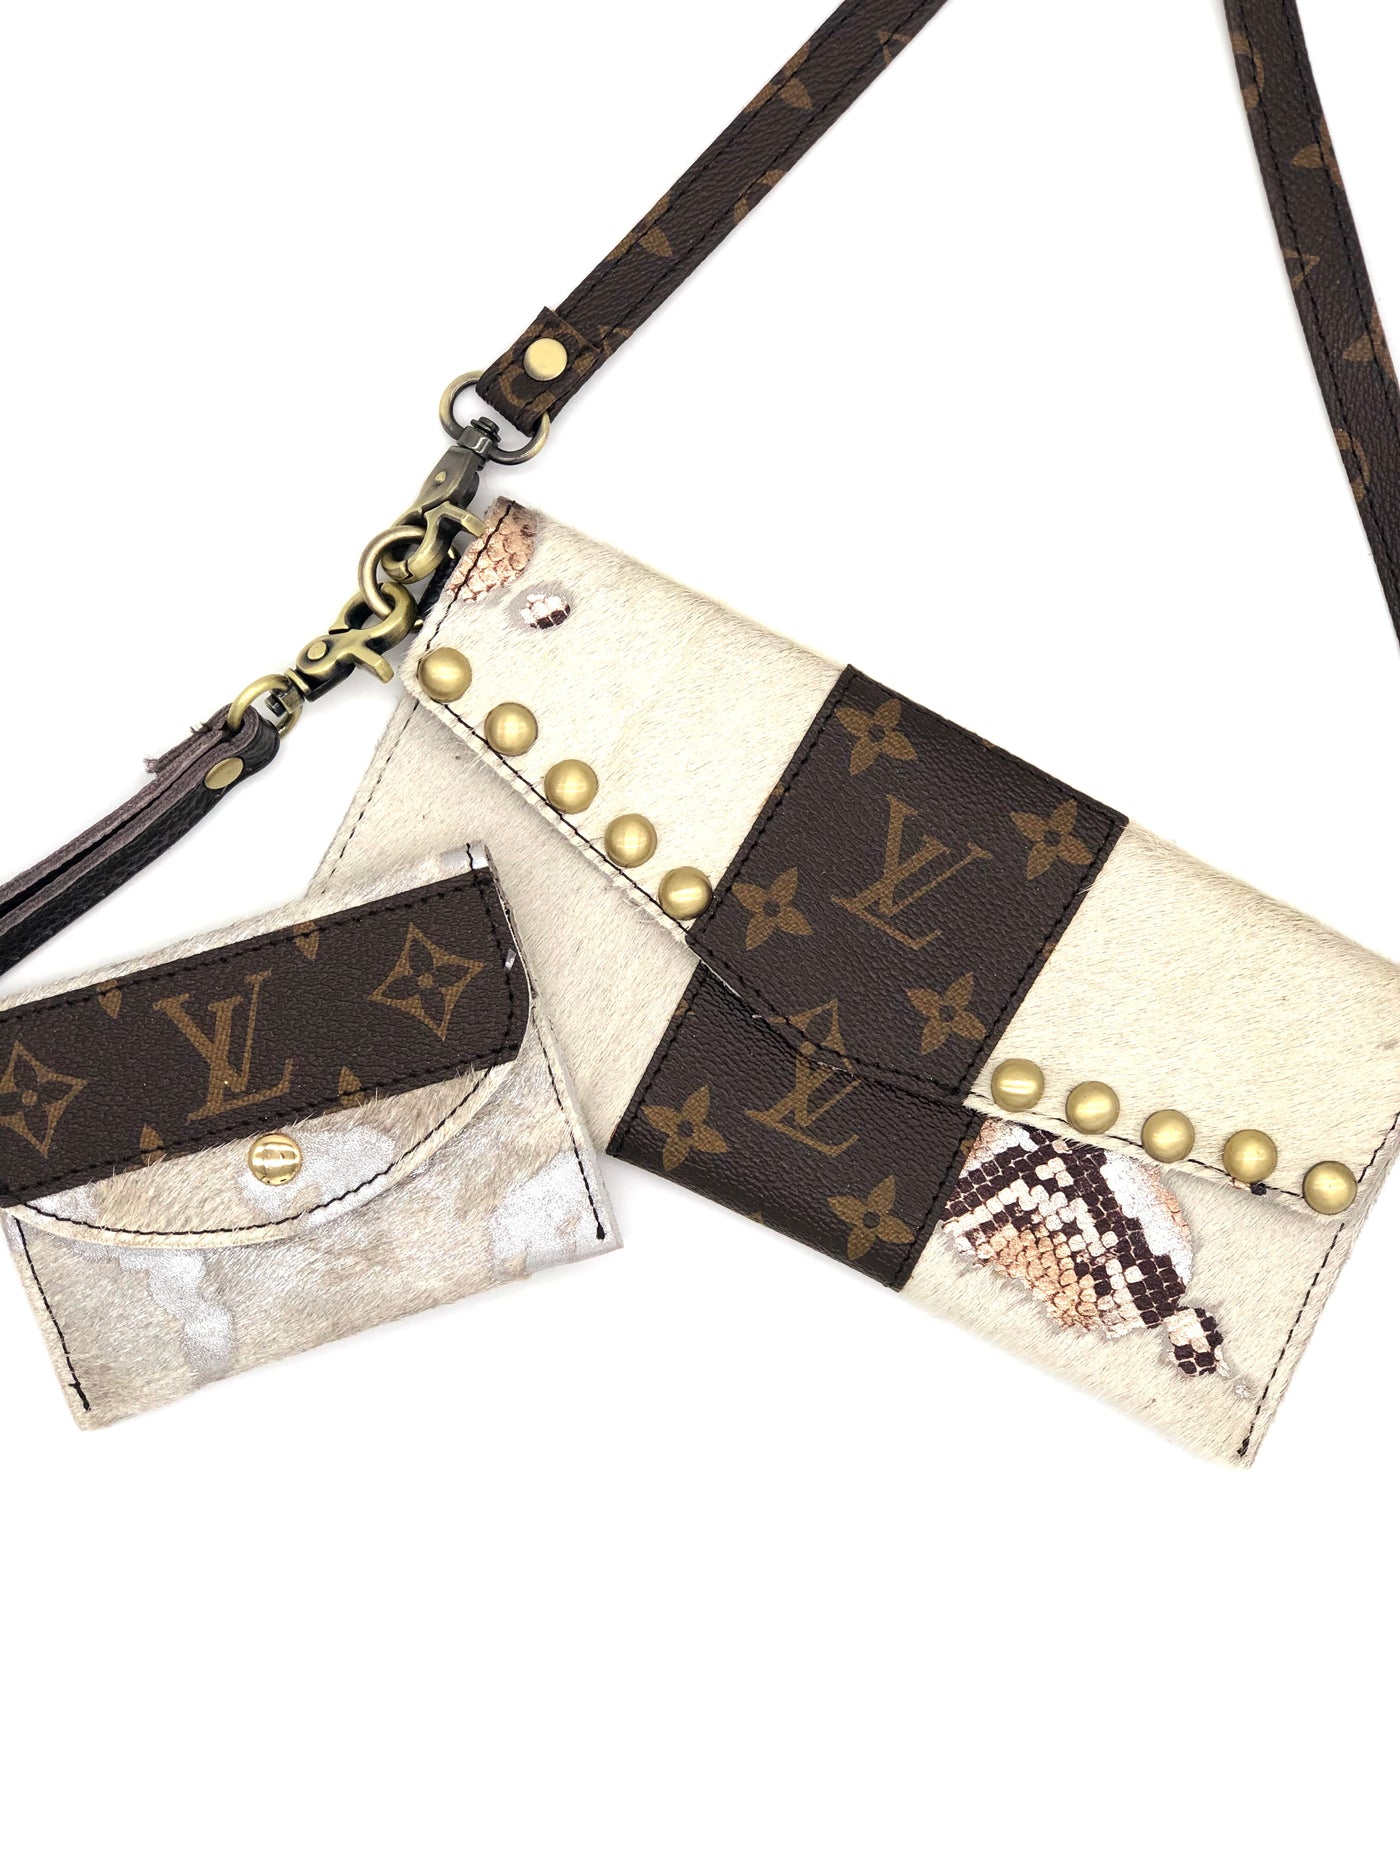 Repurposed Louis Vuitton LV bags from Gypsy Junkies/Jaded Gypsy.